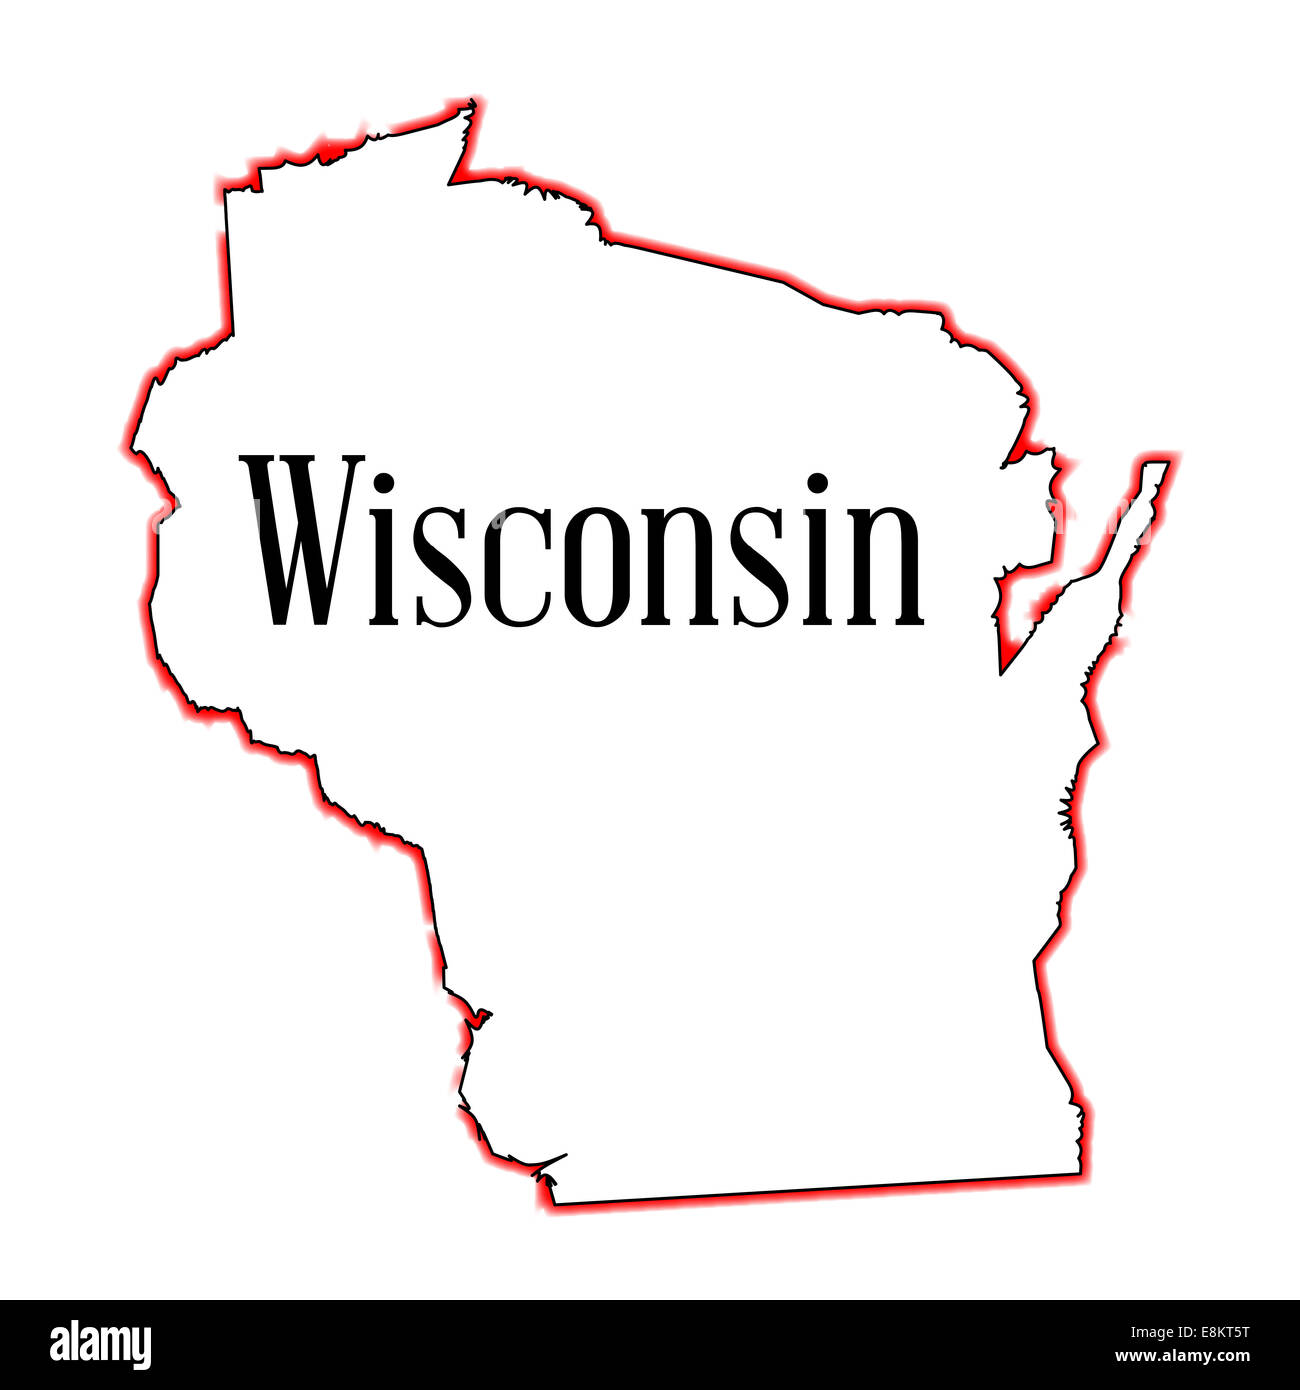 Outline map of the American state of Wisconsin Stock Photo